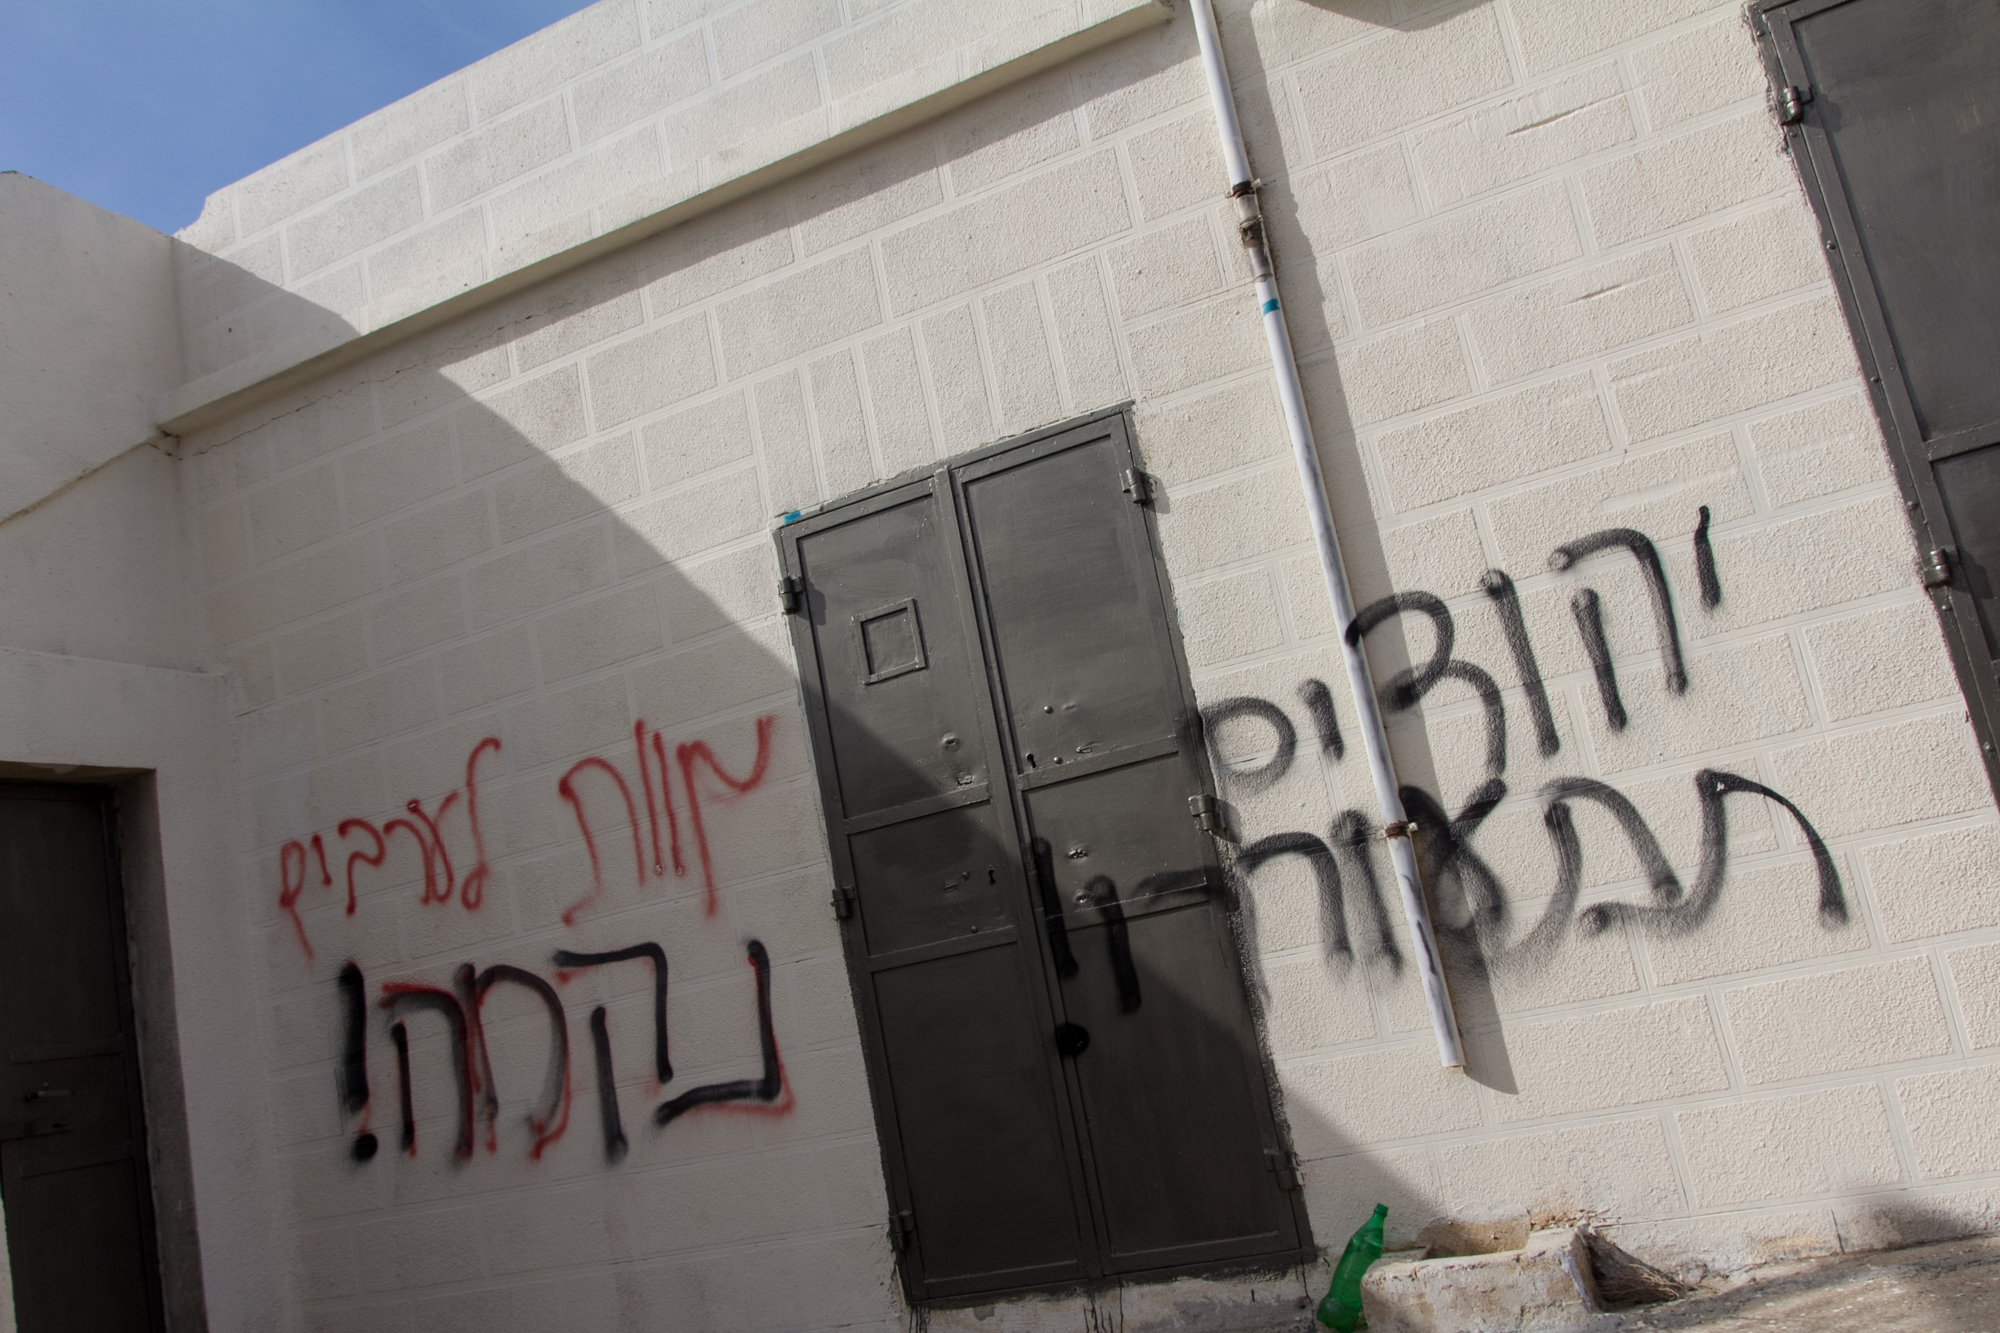 Price tag graffiti on a Palestinian house near the Israeli settlement of Ma'ale Levona. By Oren Rozen.